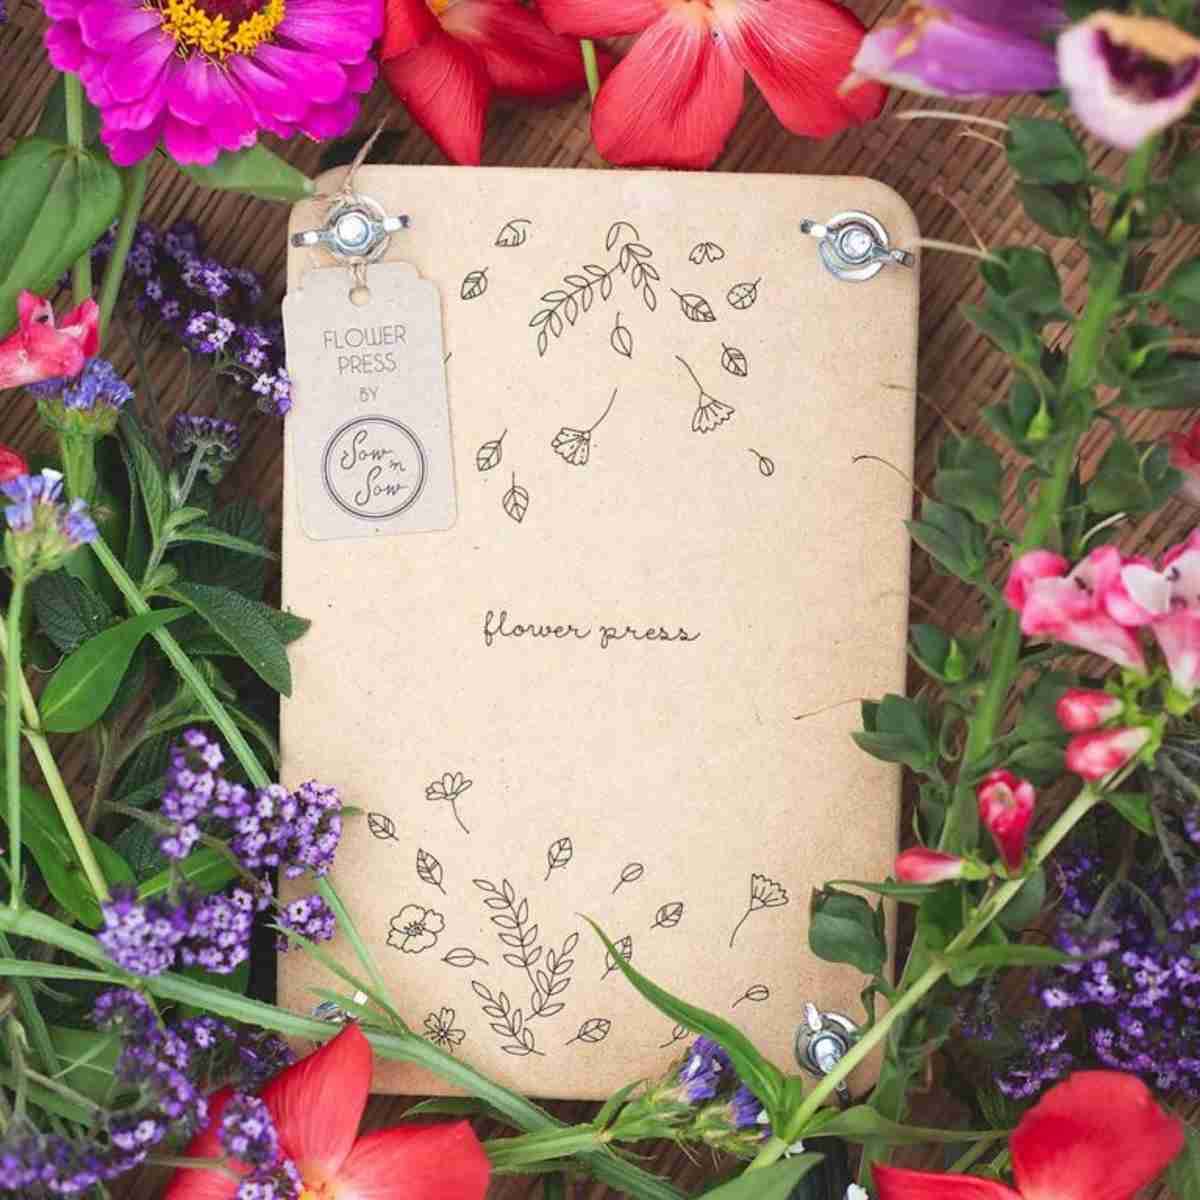 Sow 'n Sow Flower Press - 'Falling' - Flower Press - Throw Some Seeds - Australian gardening gifts and eco products online!